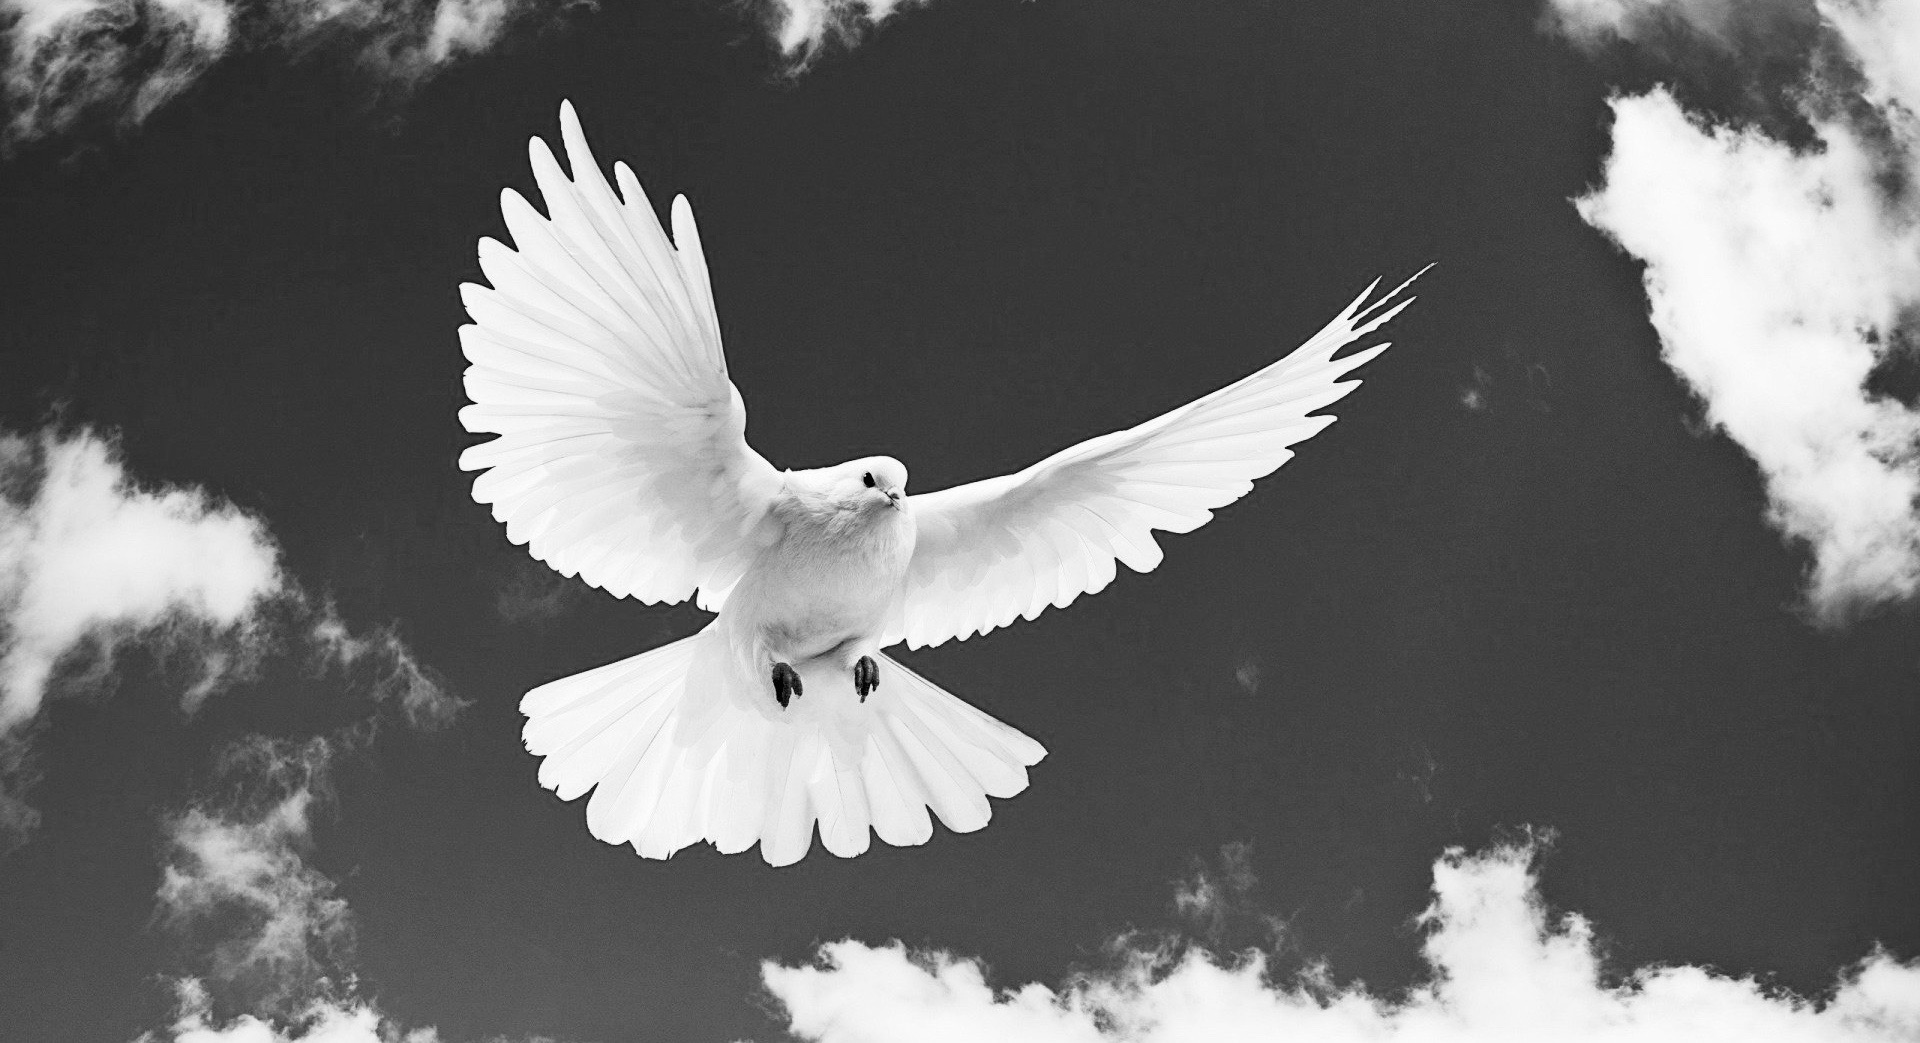 dove-flying-innercomm.net-peace